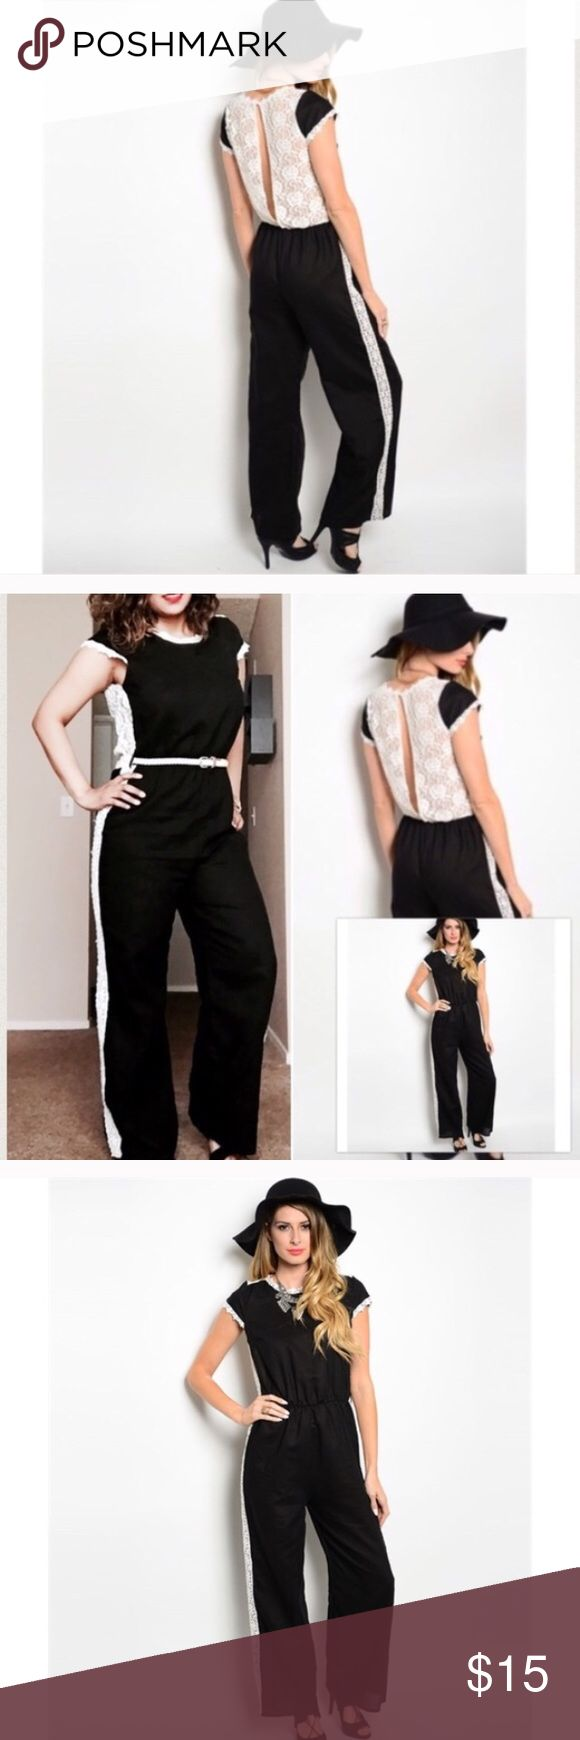 Black and White Jumper Great jumper! Looks absolutely gorgeous on! Add a belt to give it that fab look! Pants Jumpsuits & Rompers